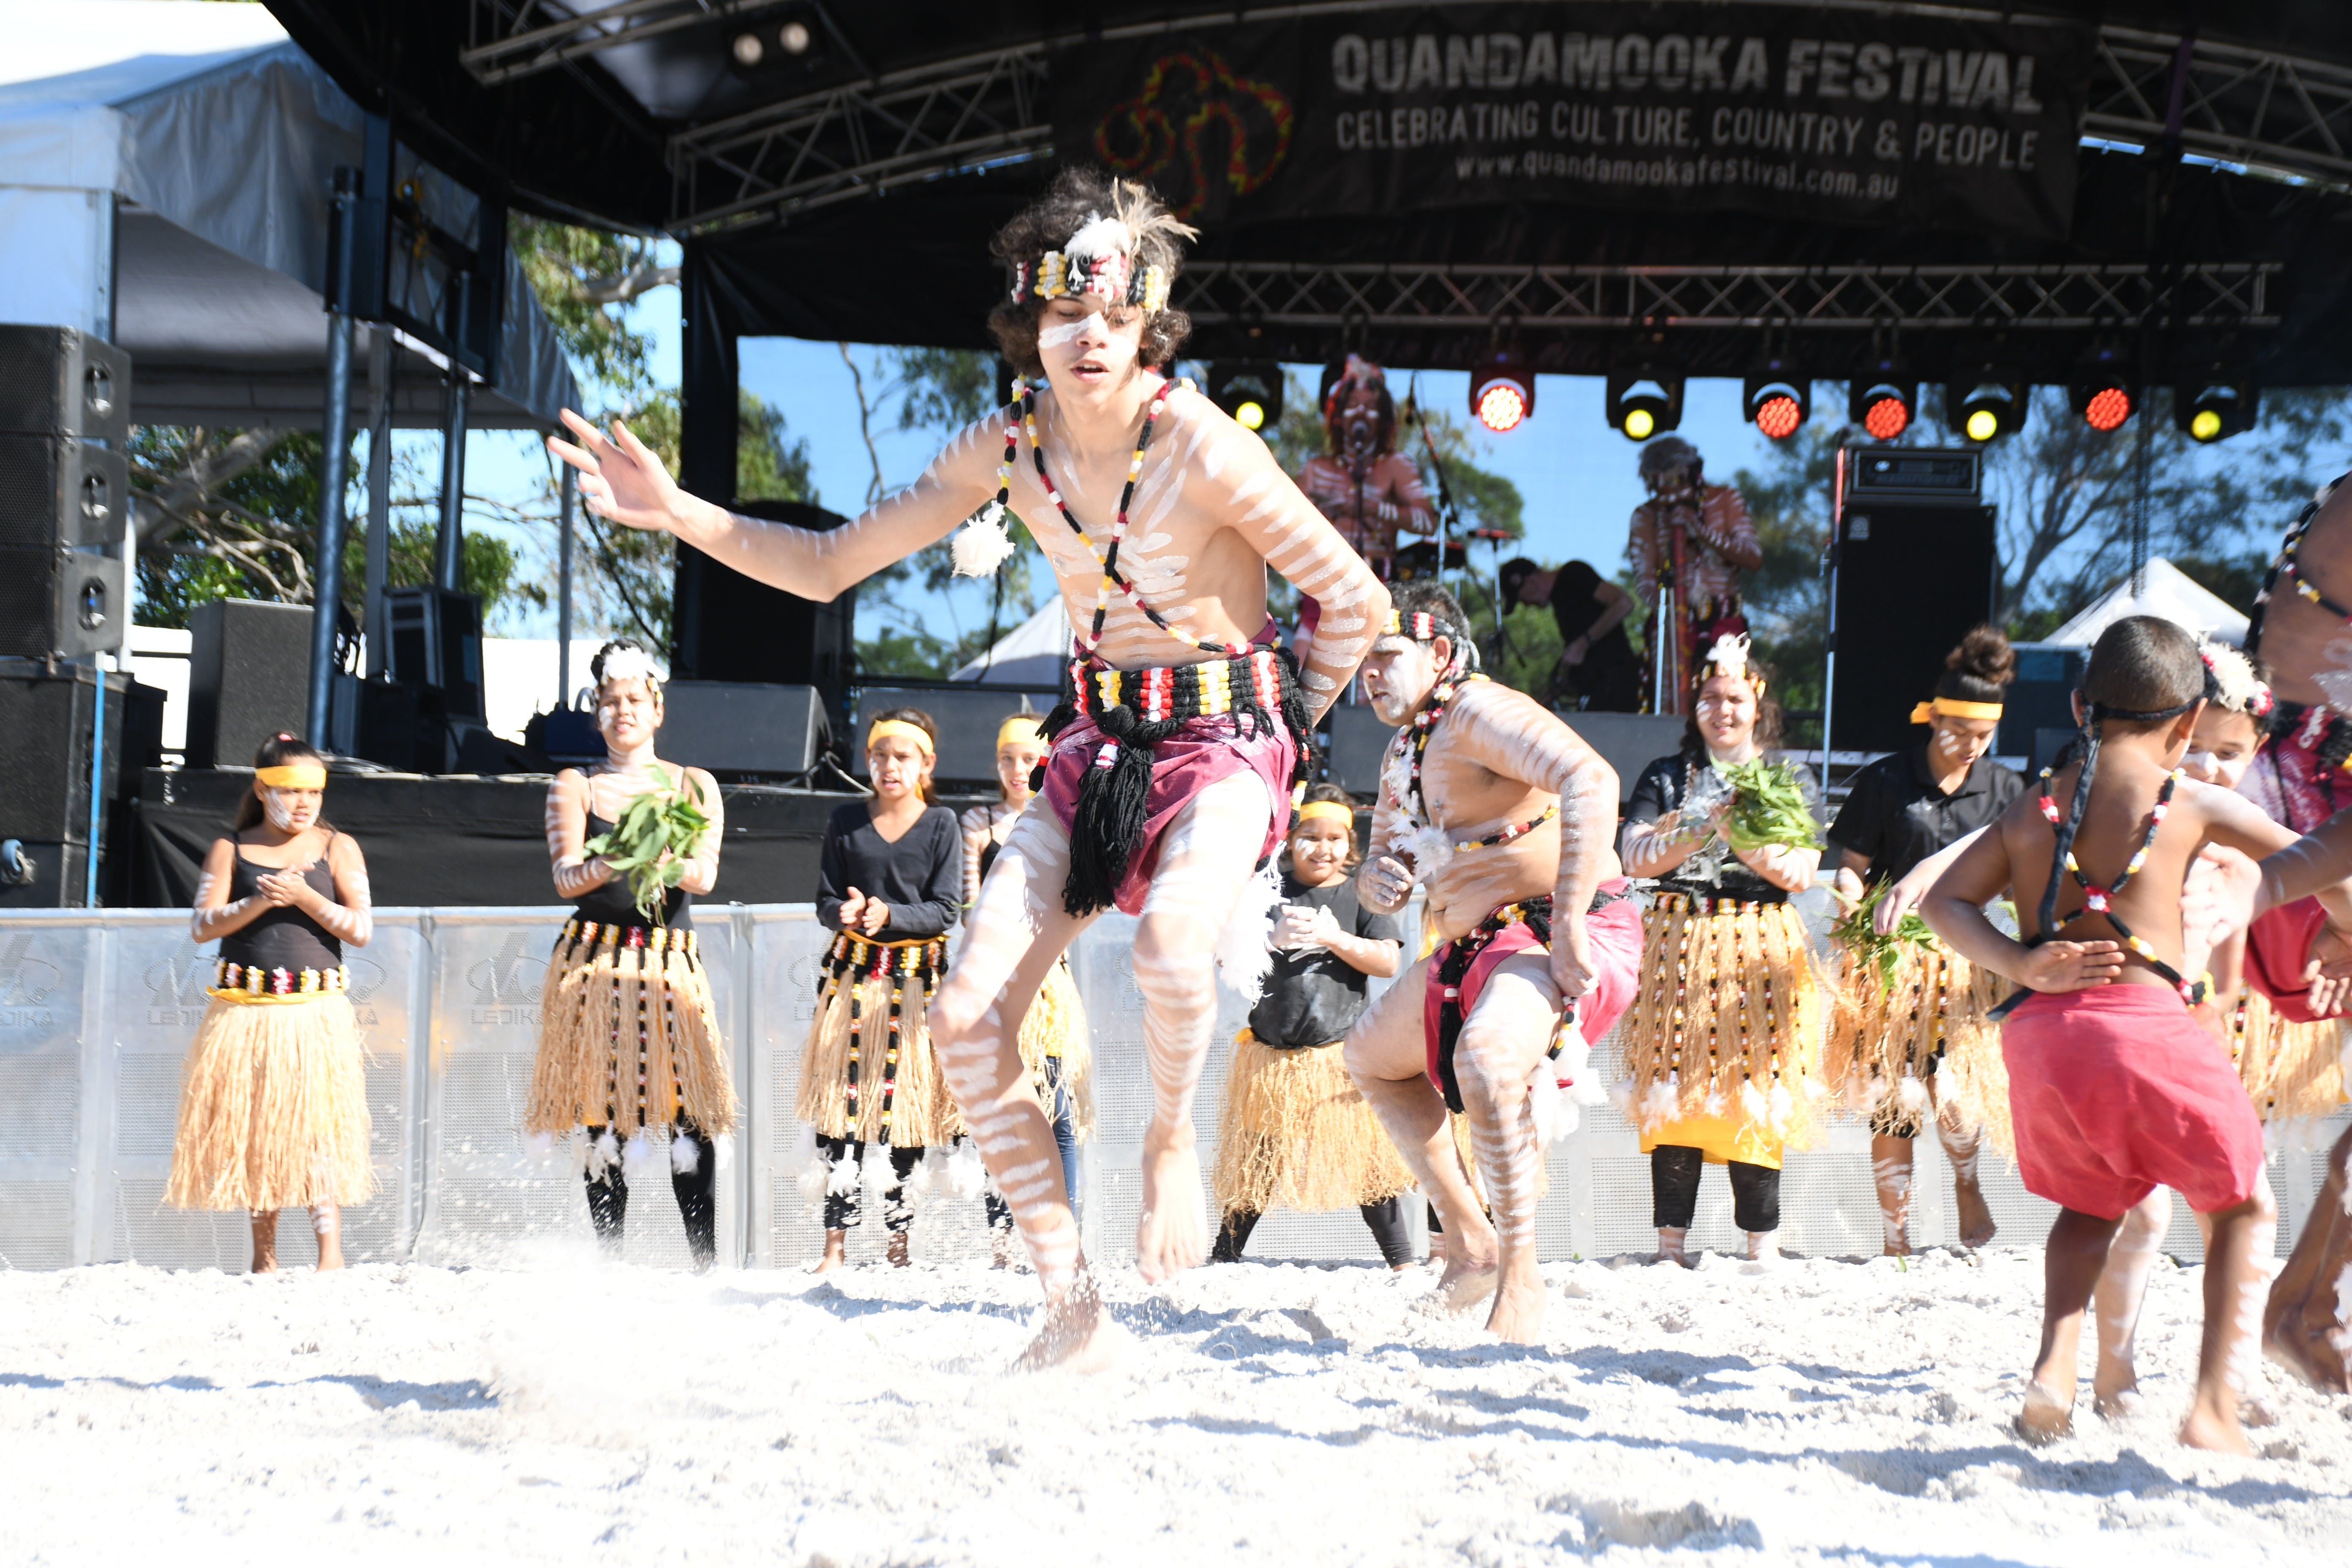 Quandamooka Festival 2021 - Accommodation NSW